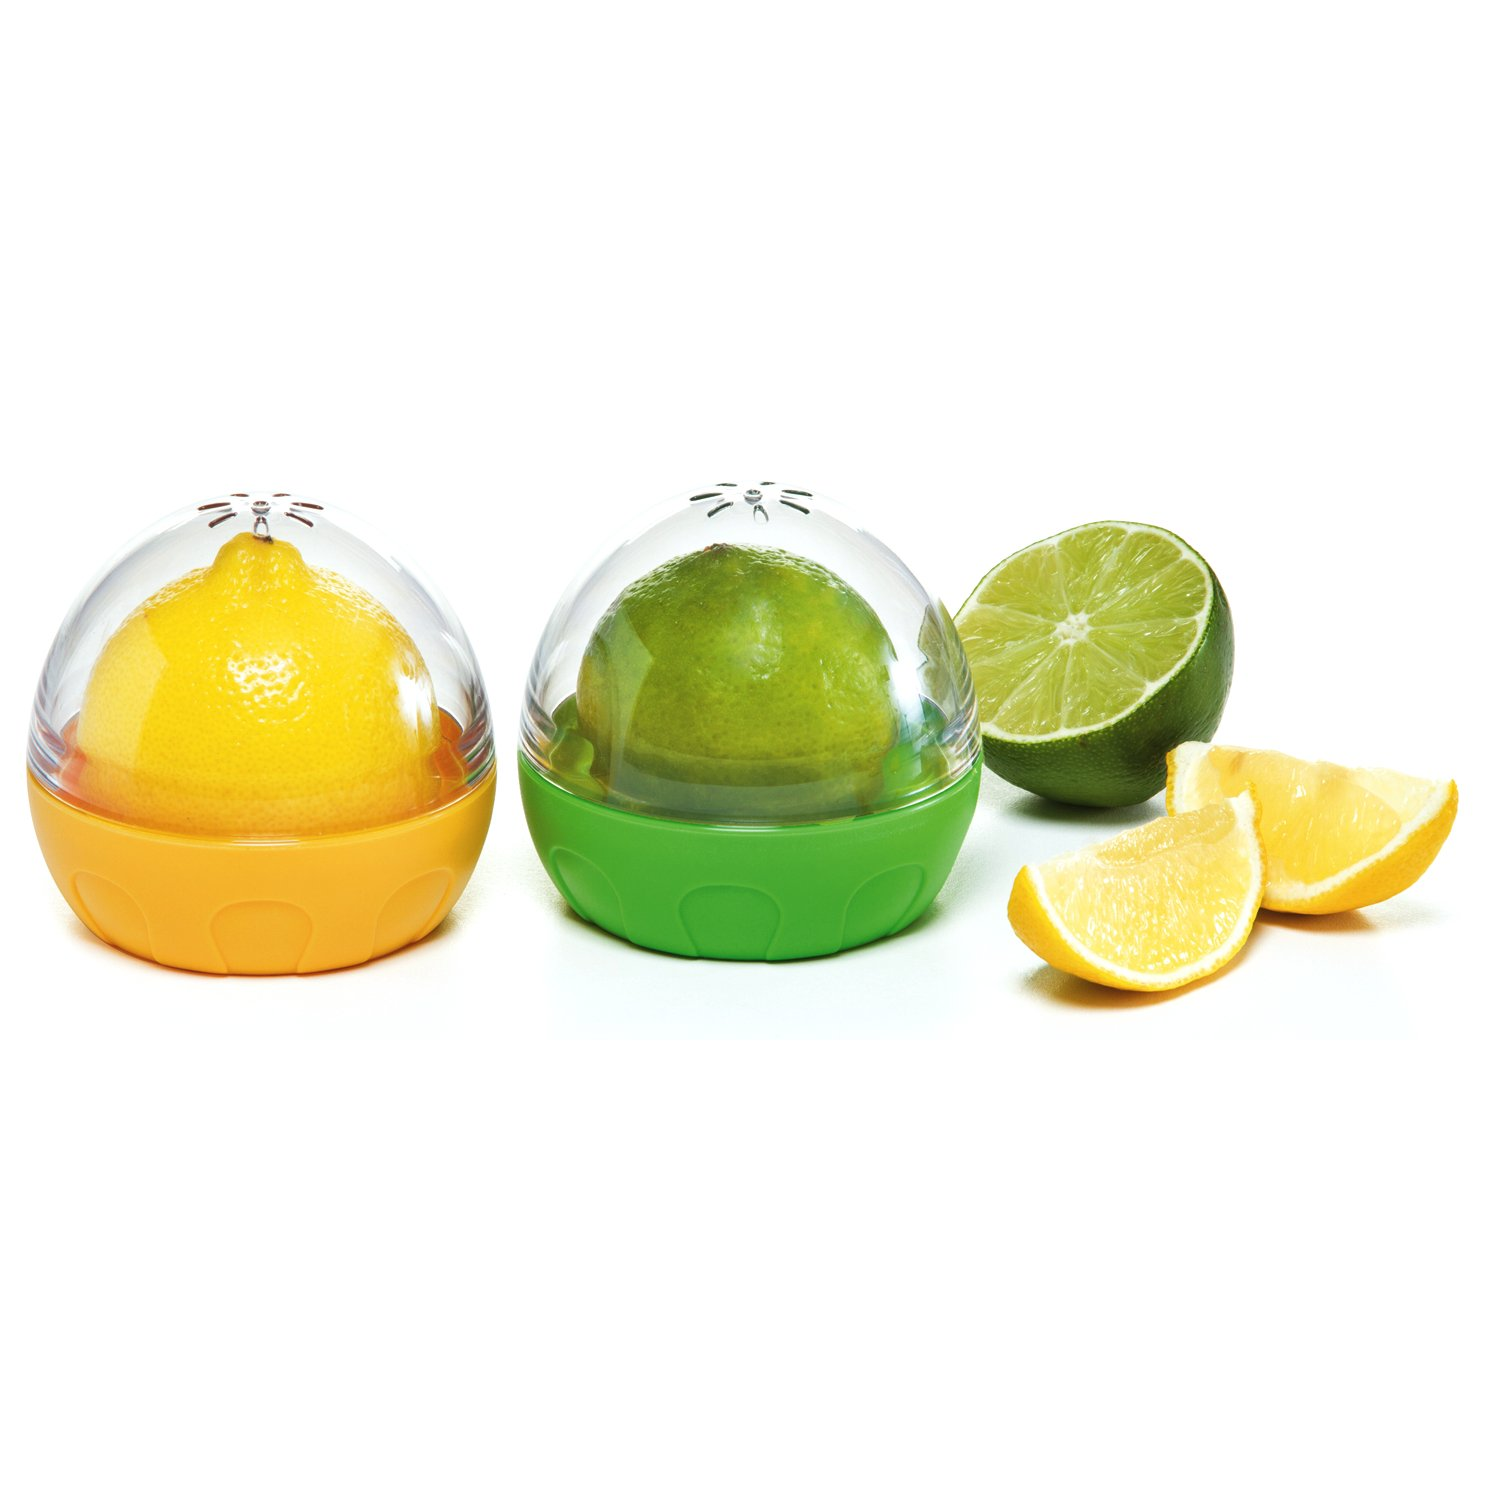 Progressive International Citrus Keeper, Green or Yellow LKS-05CDP